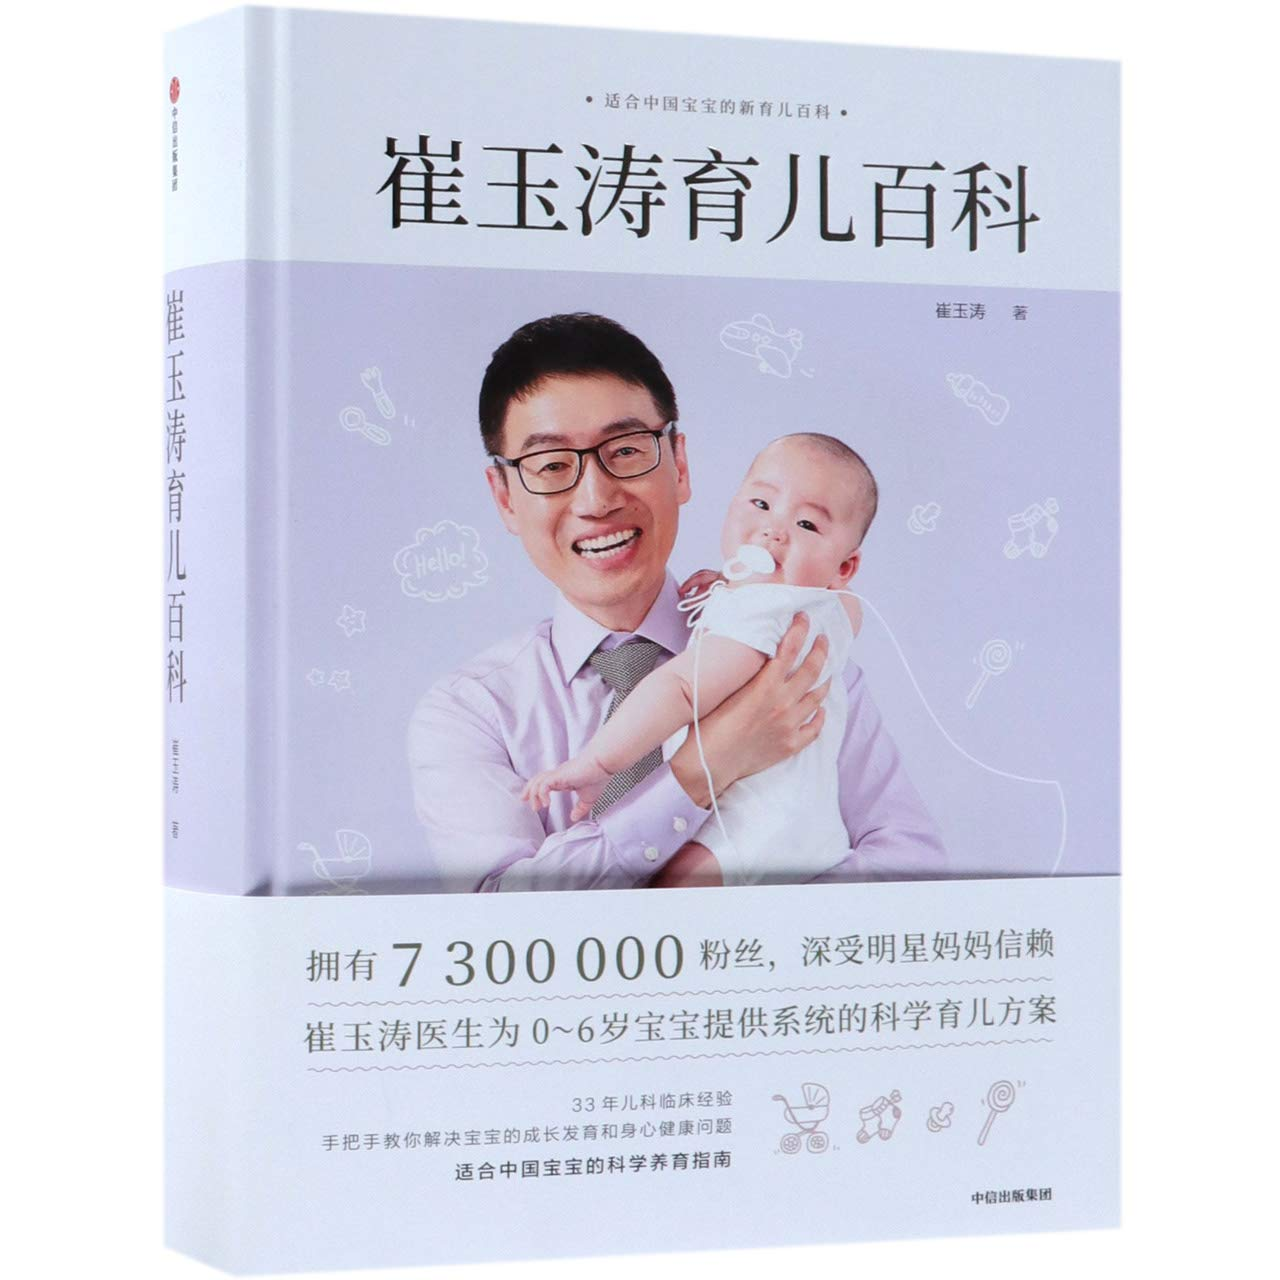 Parenting Encyclopedia Of Cui Yutao (Hardcover) (Chinese Edition)